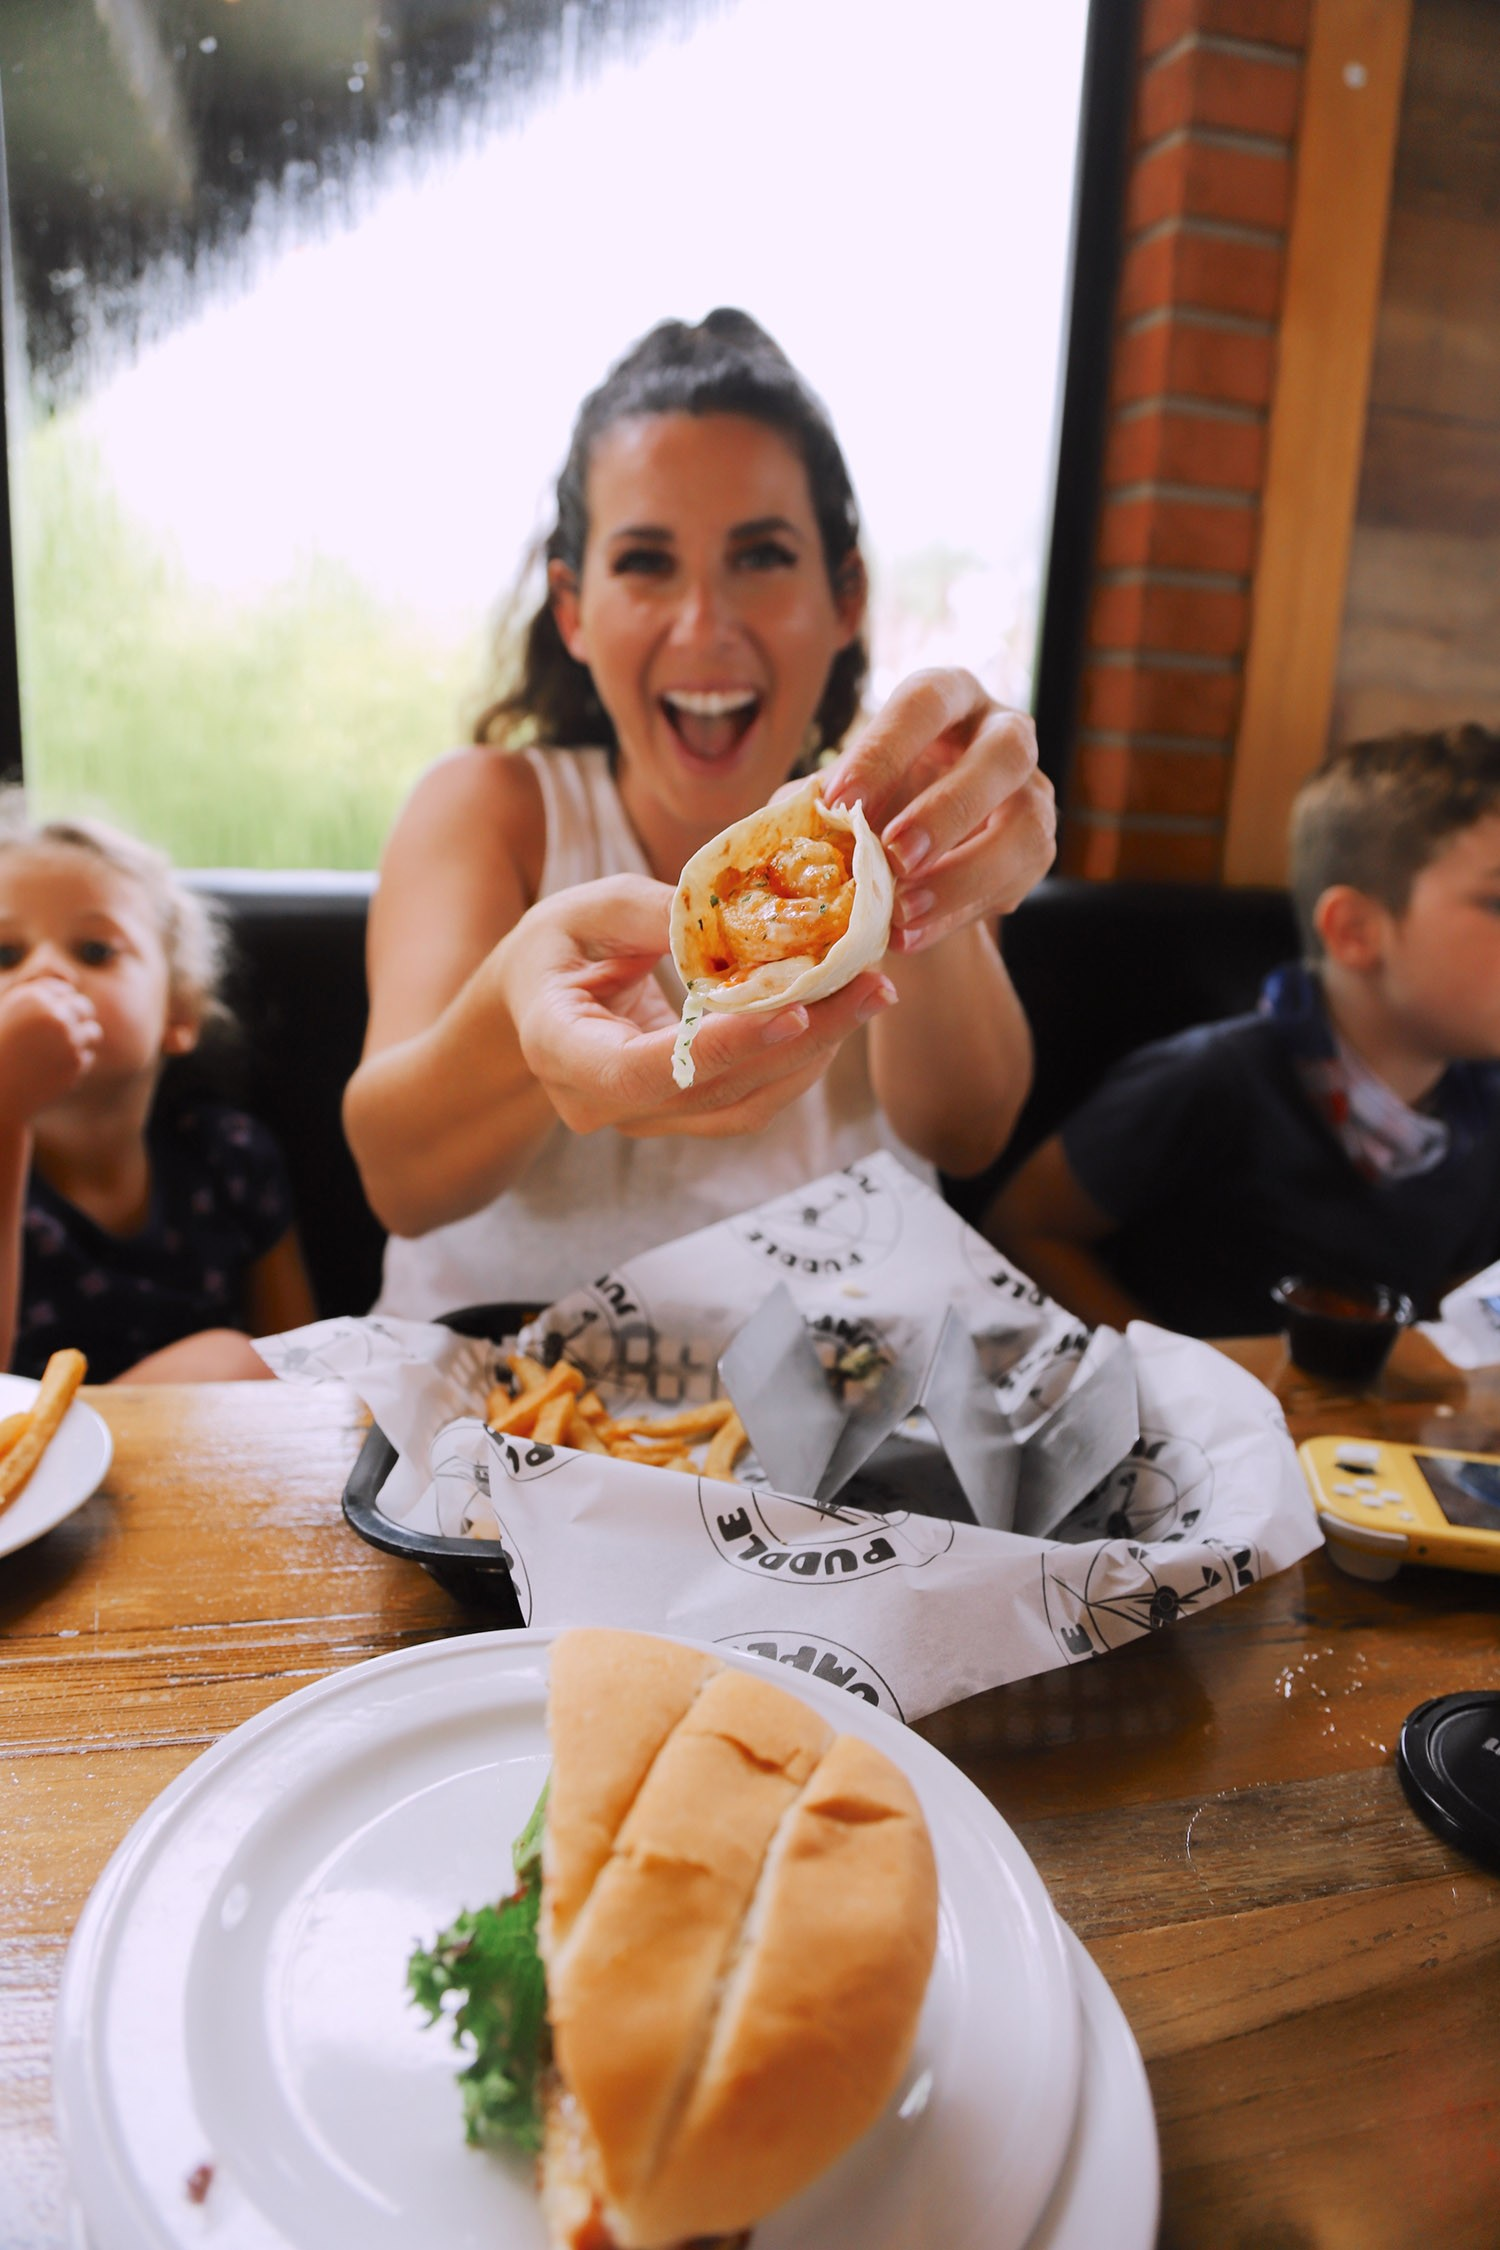 Spectacular Lake County, Florida Staycation Ideas for the Family! Spicy Shrimp Tacos at Puddle Jumpers | Lake County by popular Florida blog, Fresh Mommy Blog: image of a family eating food at Puddle Jumpers.